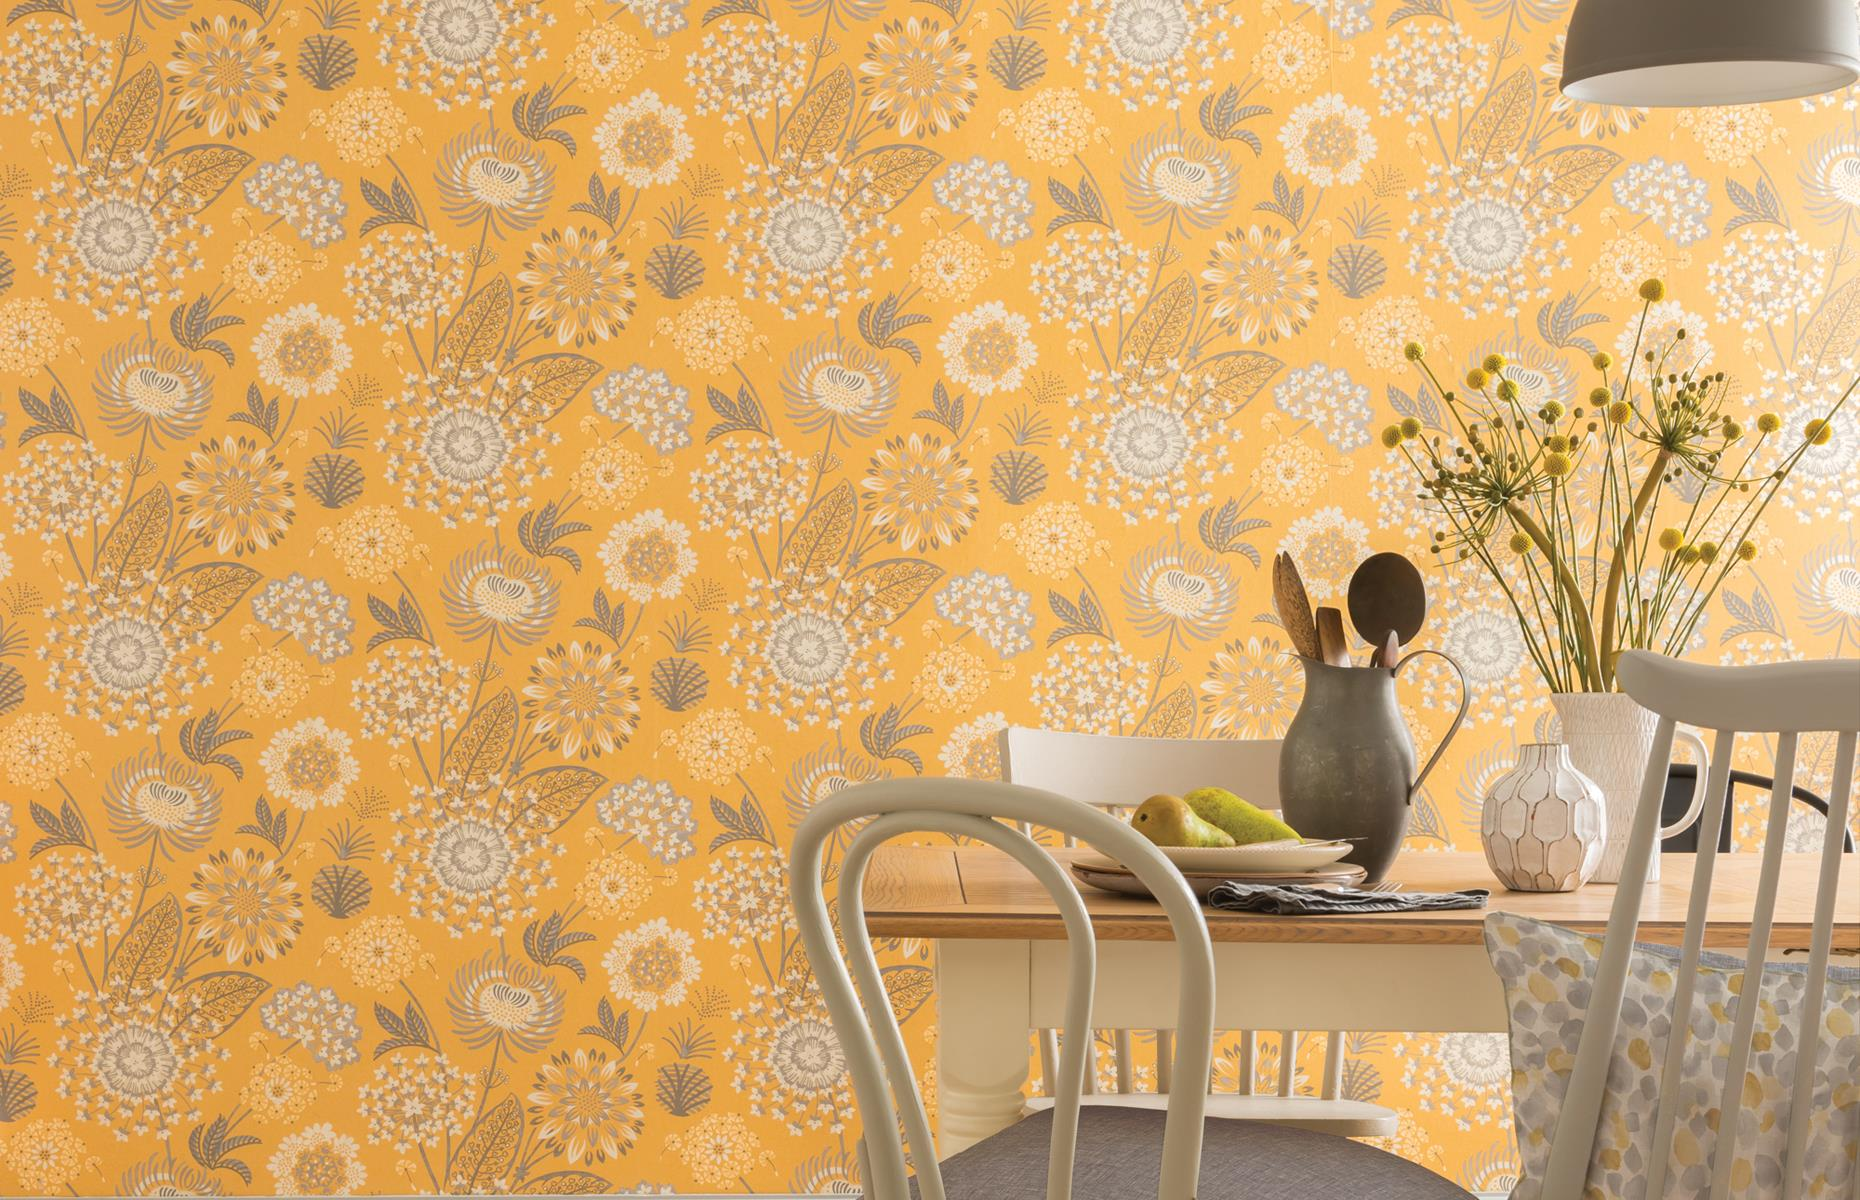 55 stunning wallpaper ideas to give your decor the wow factor ...